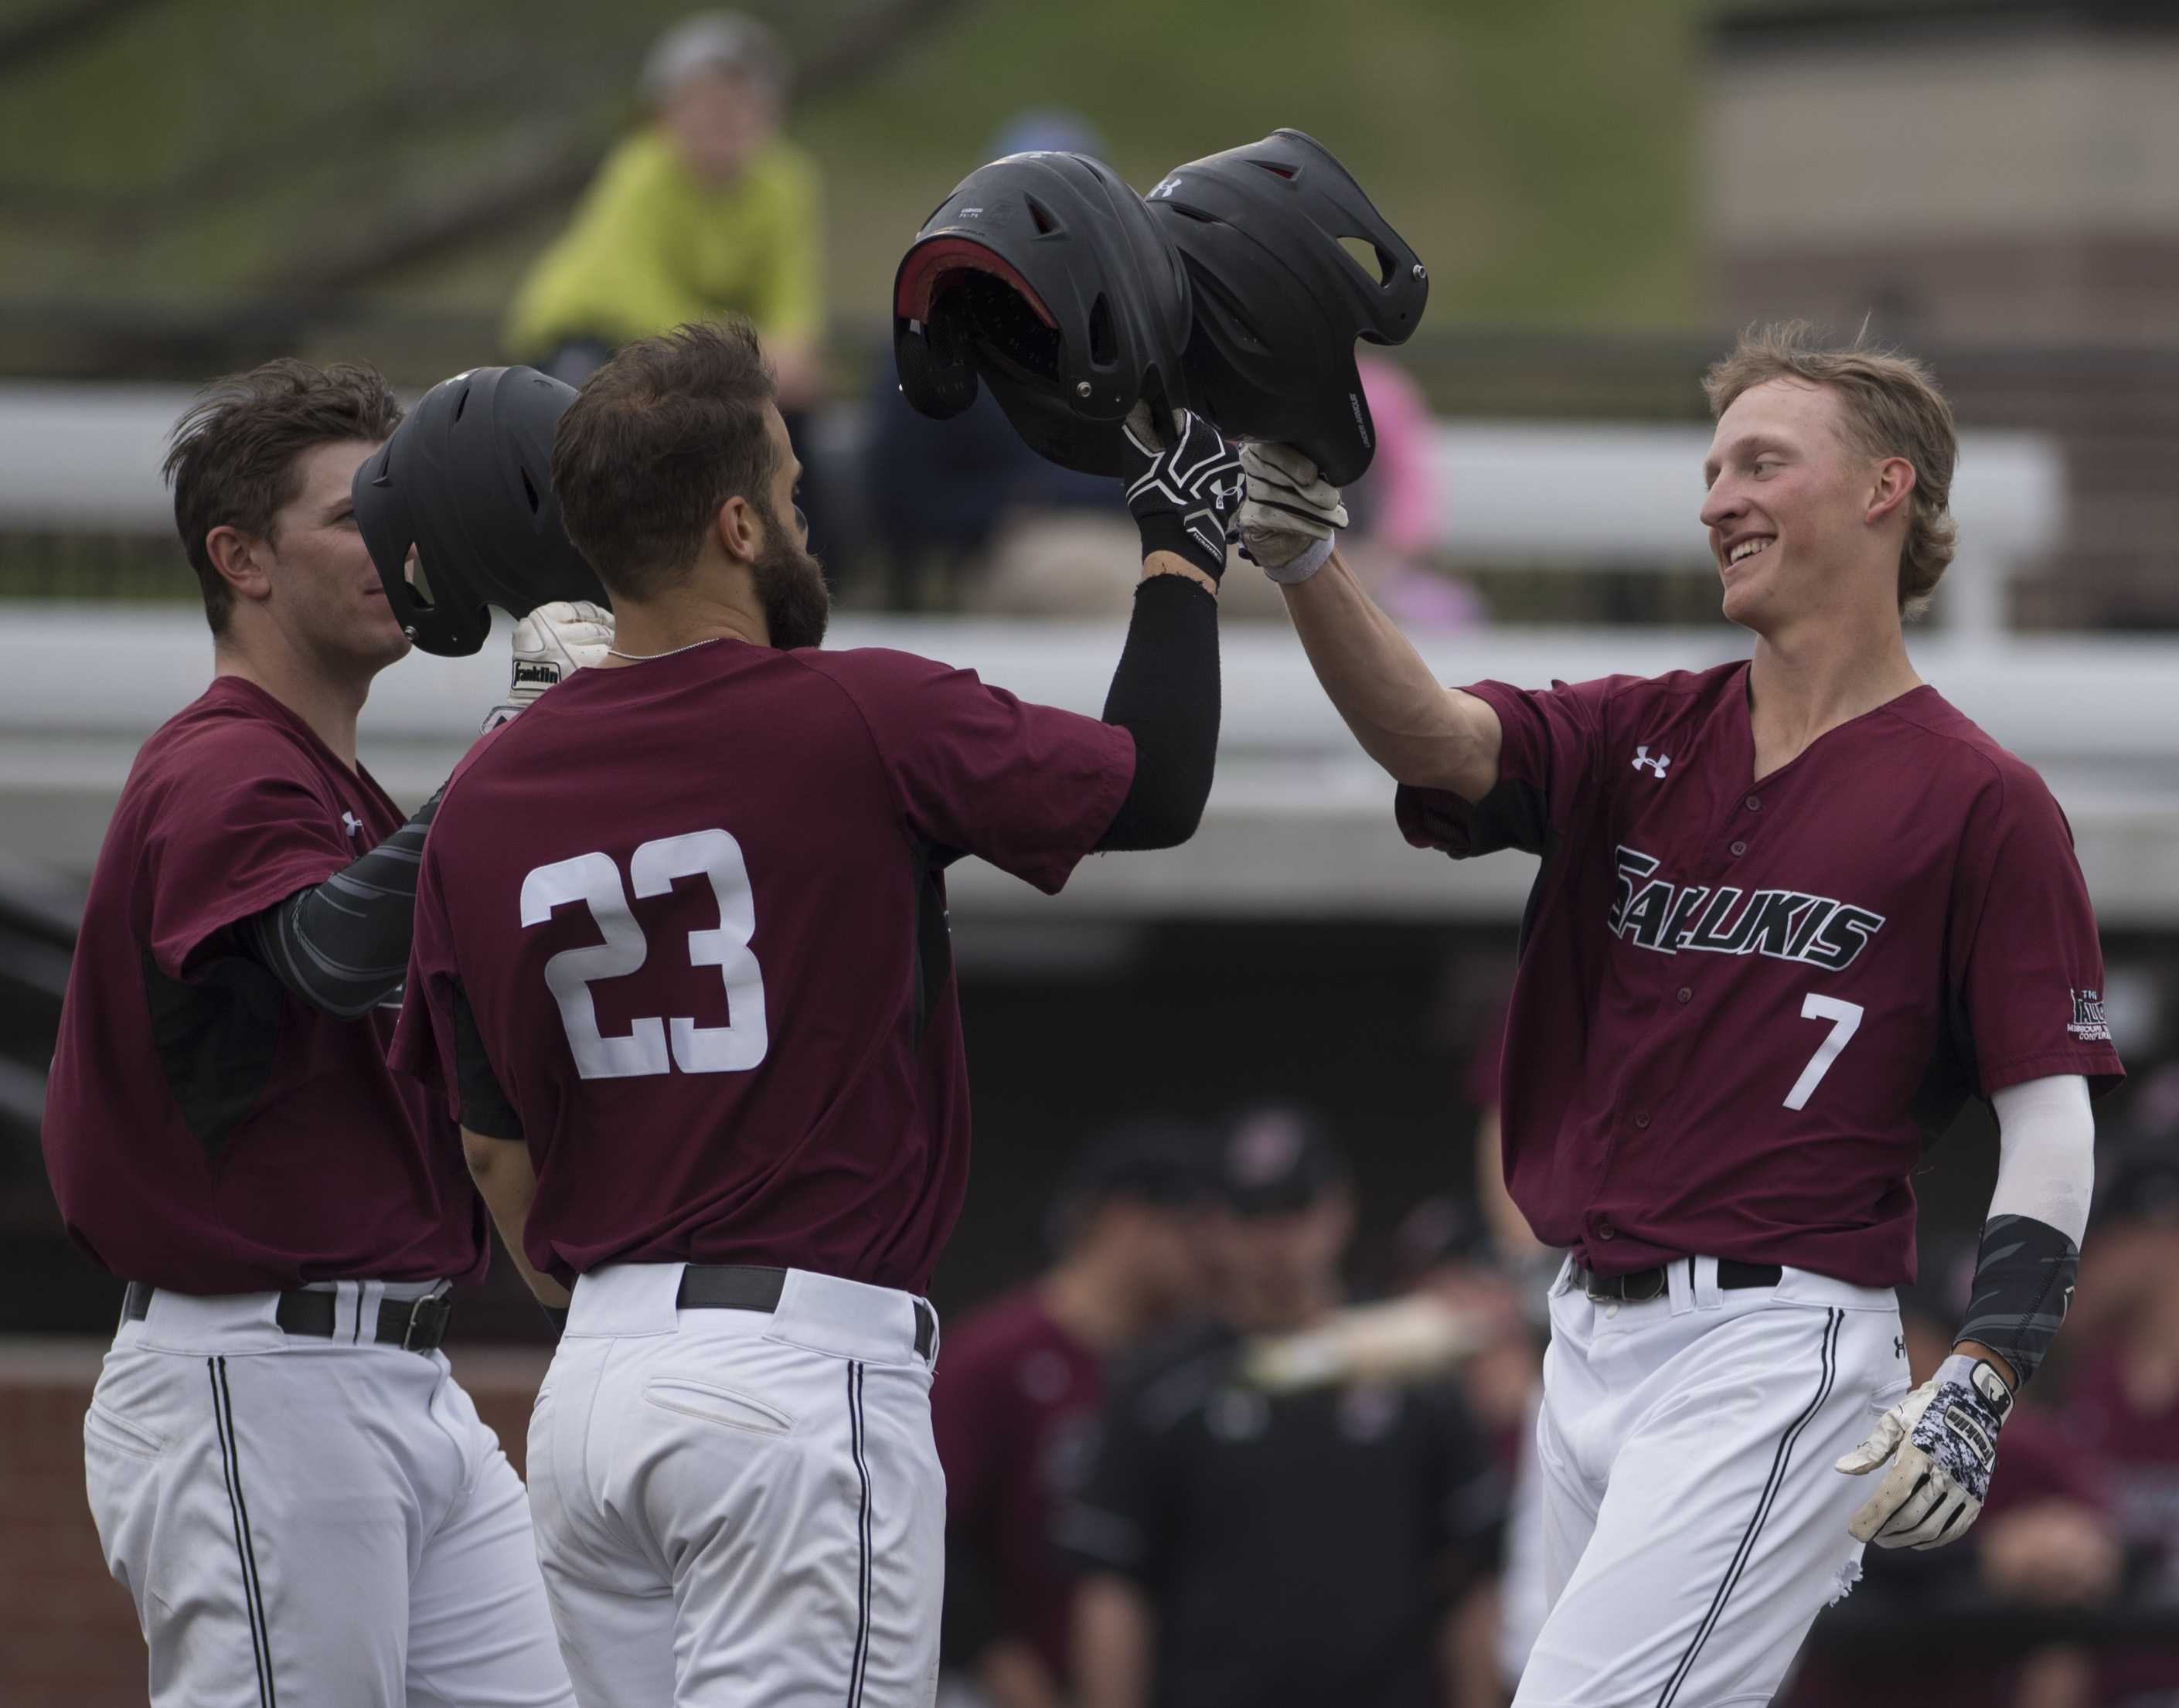 Junior infielder Connor Kopach (7) celebrates after hitting a two-run home run Friday, March 24, 2017, alongside senior infielder Ryan Sabo (23) and senior infielder Will Farmer. The Jacksonville State Gamecocks went on to beat SIU 8-6 during the first of a three-game series at Itchy Jones Stadium. (Bill Lukitsch | @lukitsbill)